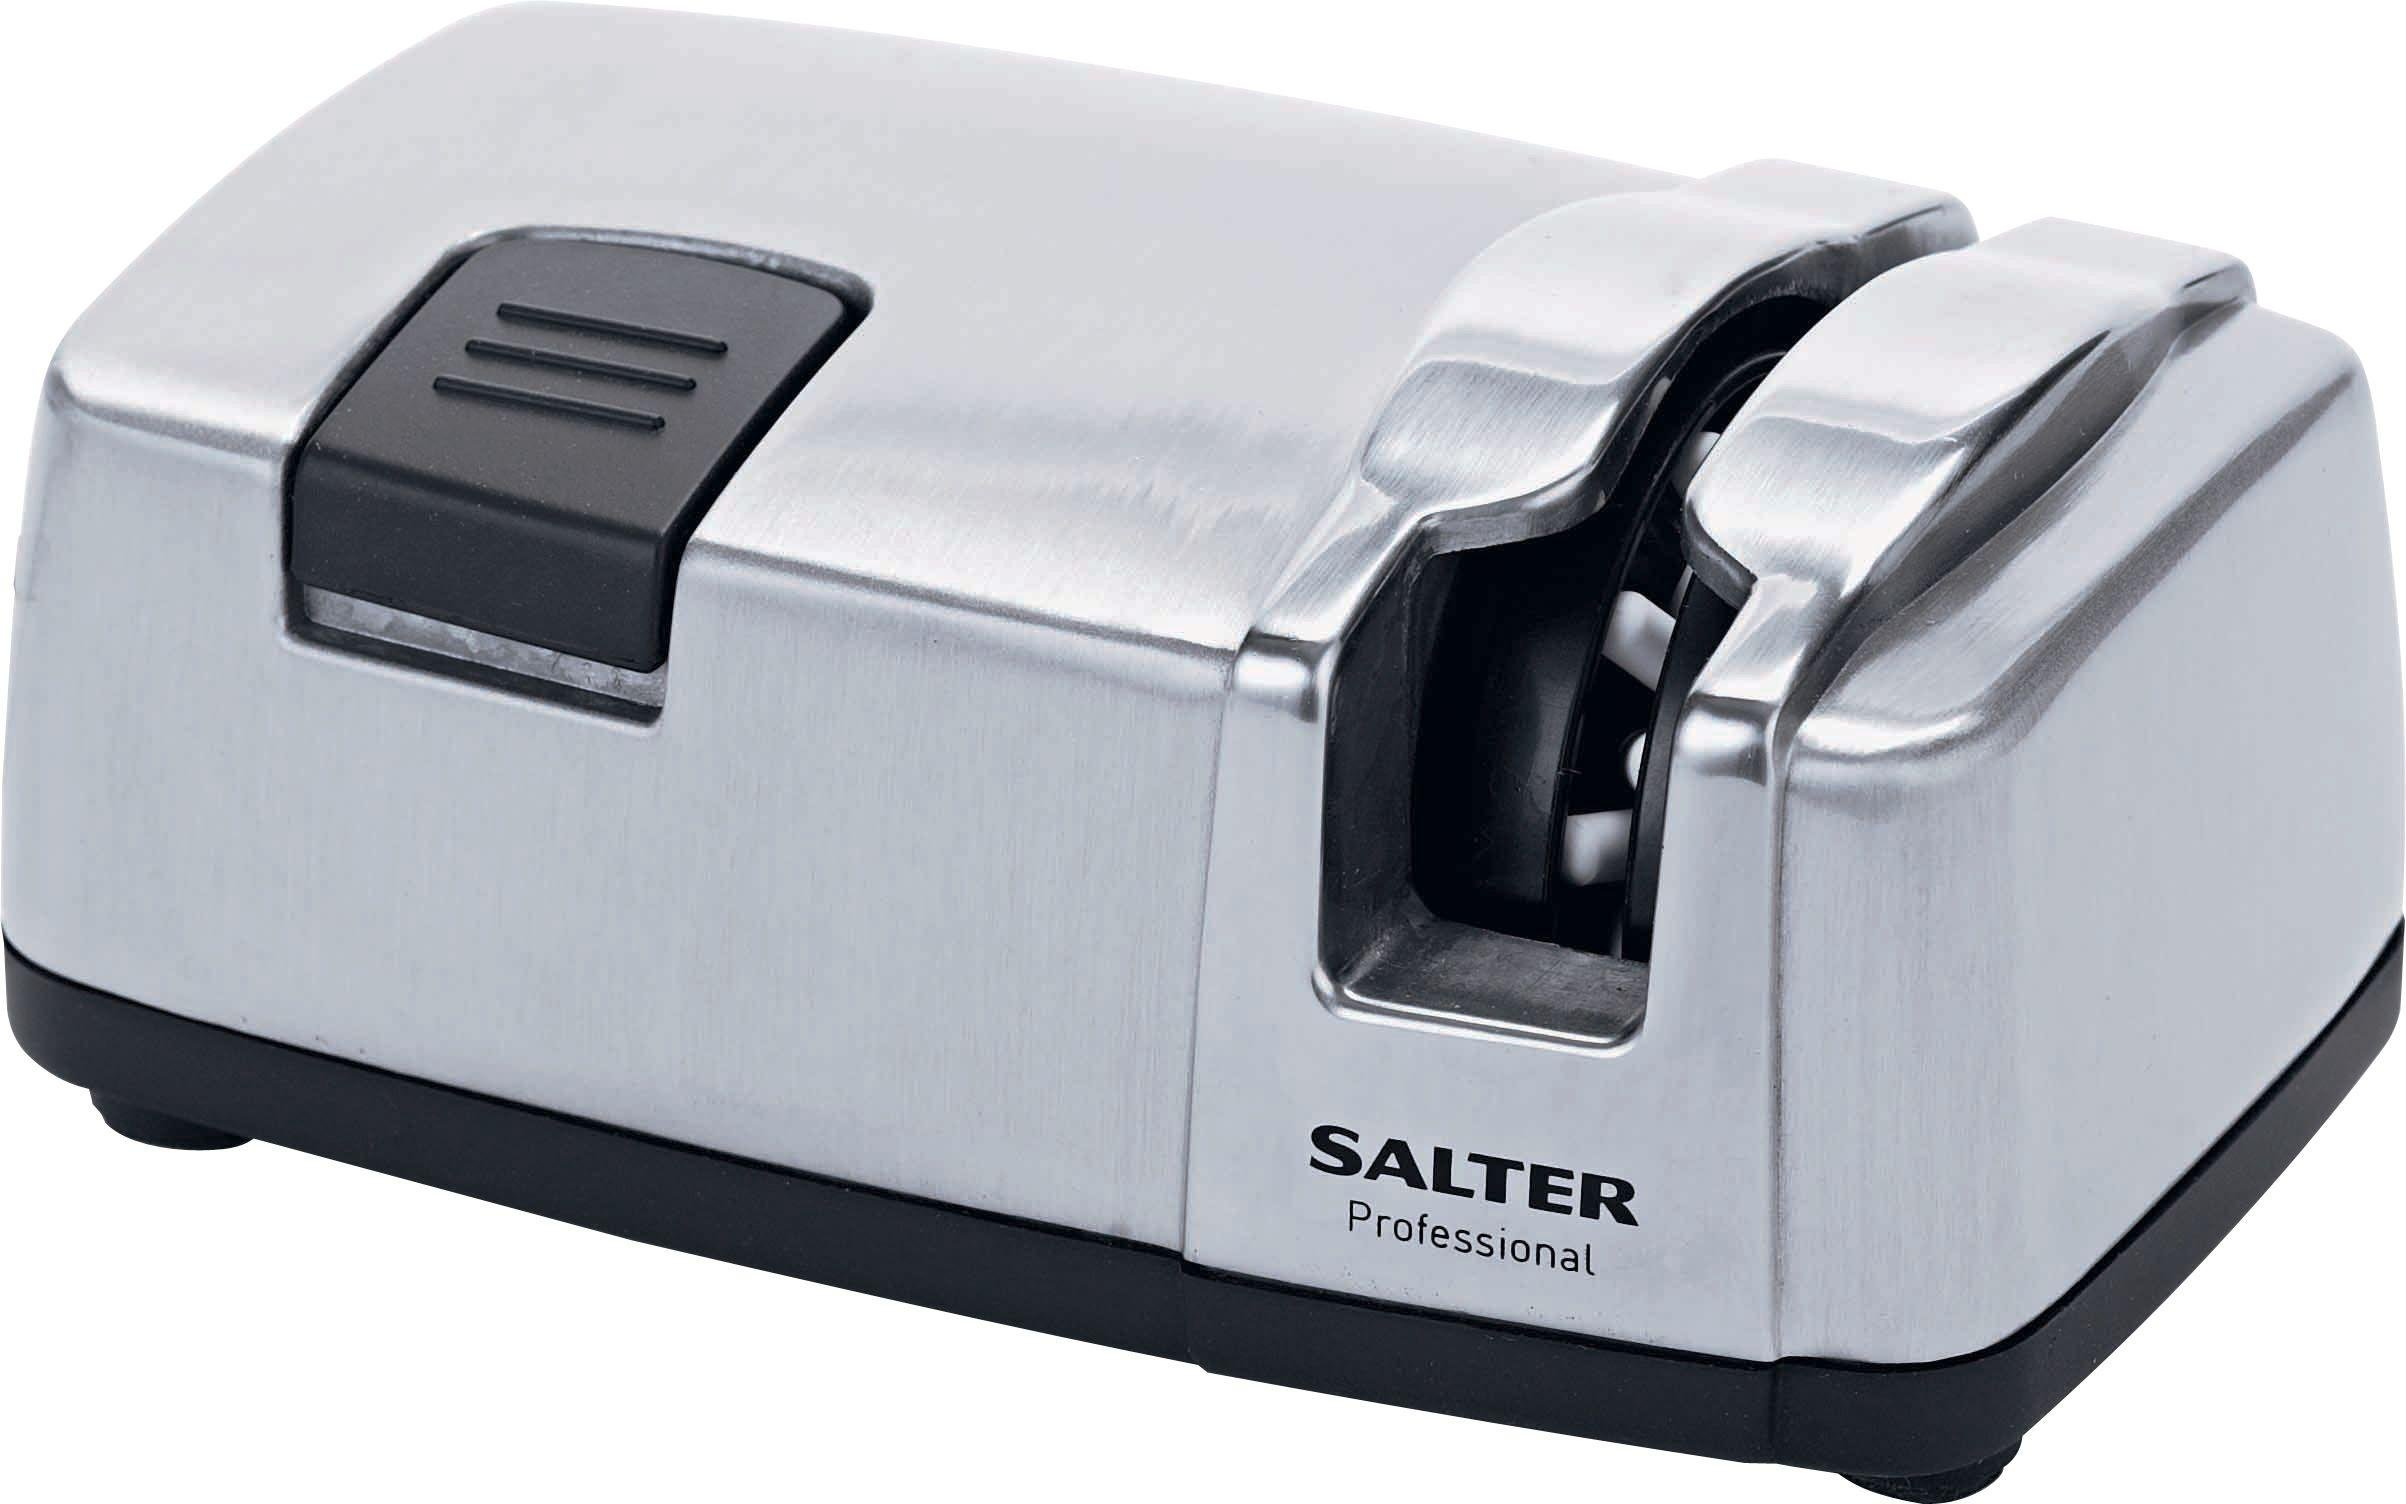 salter electronic knife sharpener - Knife Sharpener